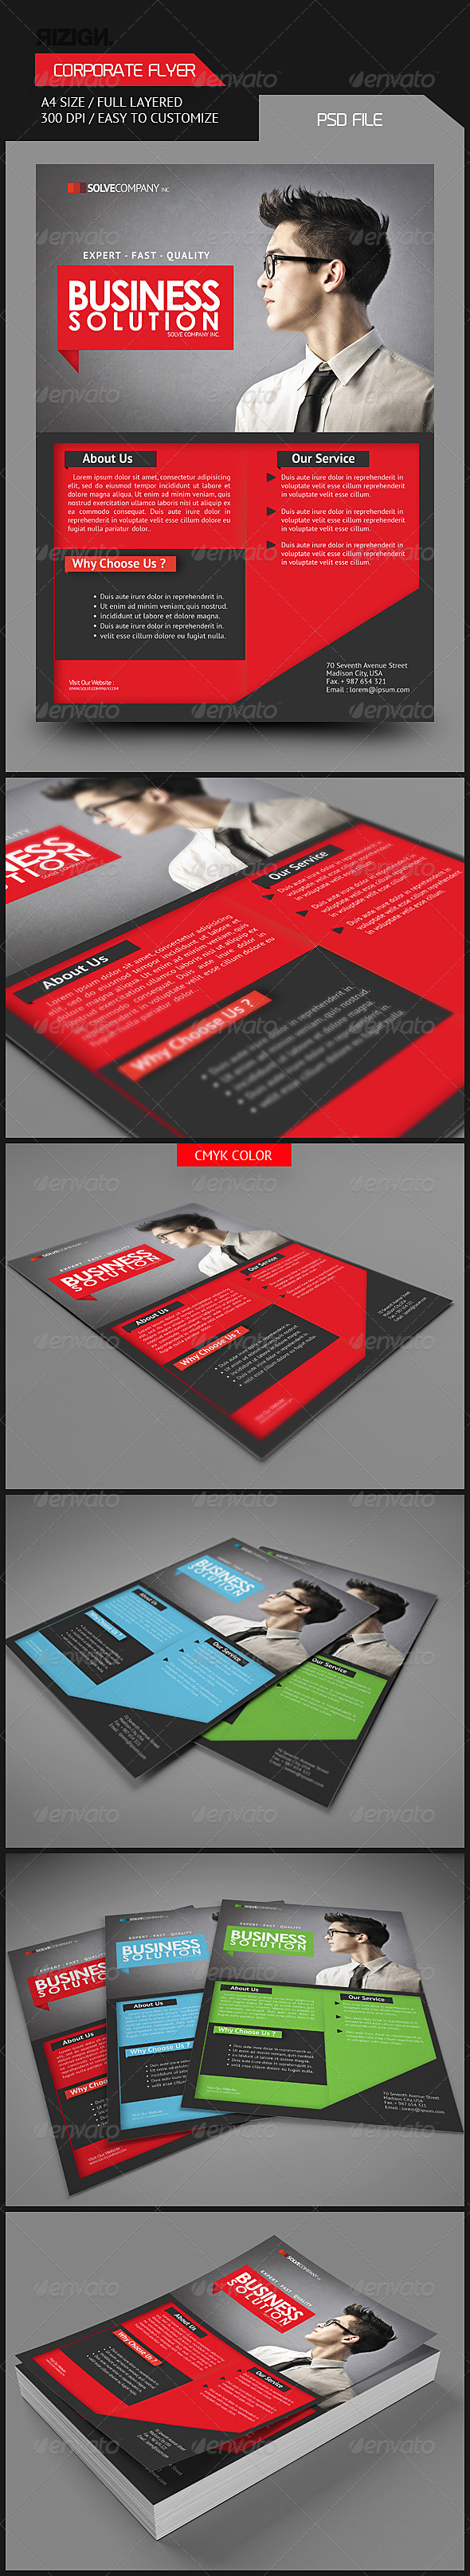 GraphicRiver Corporate Flyer 6155451